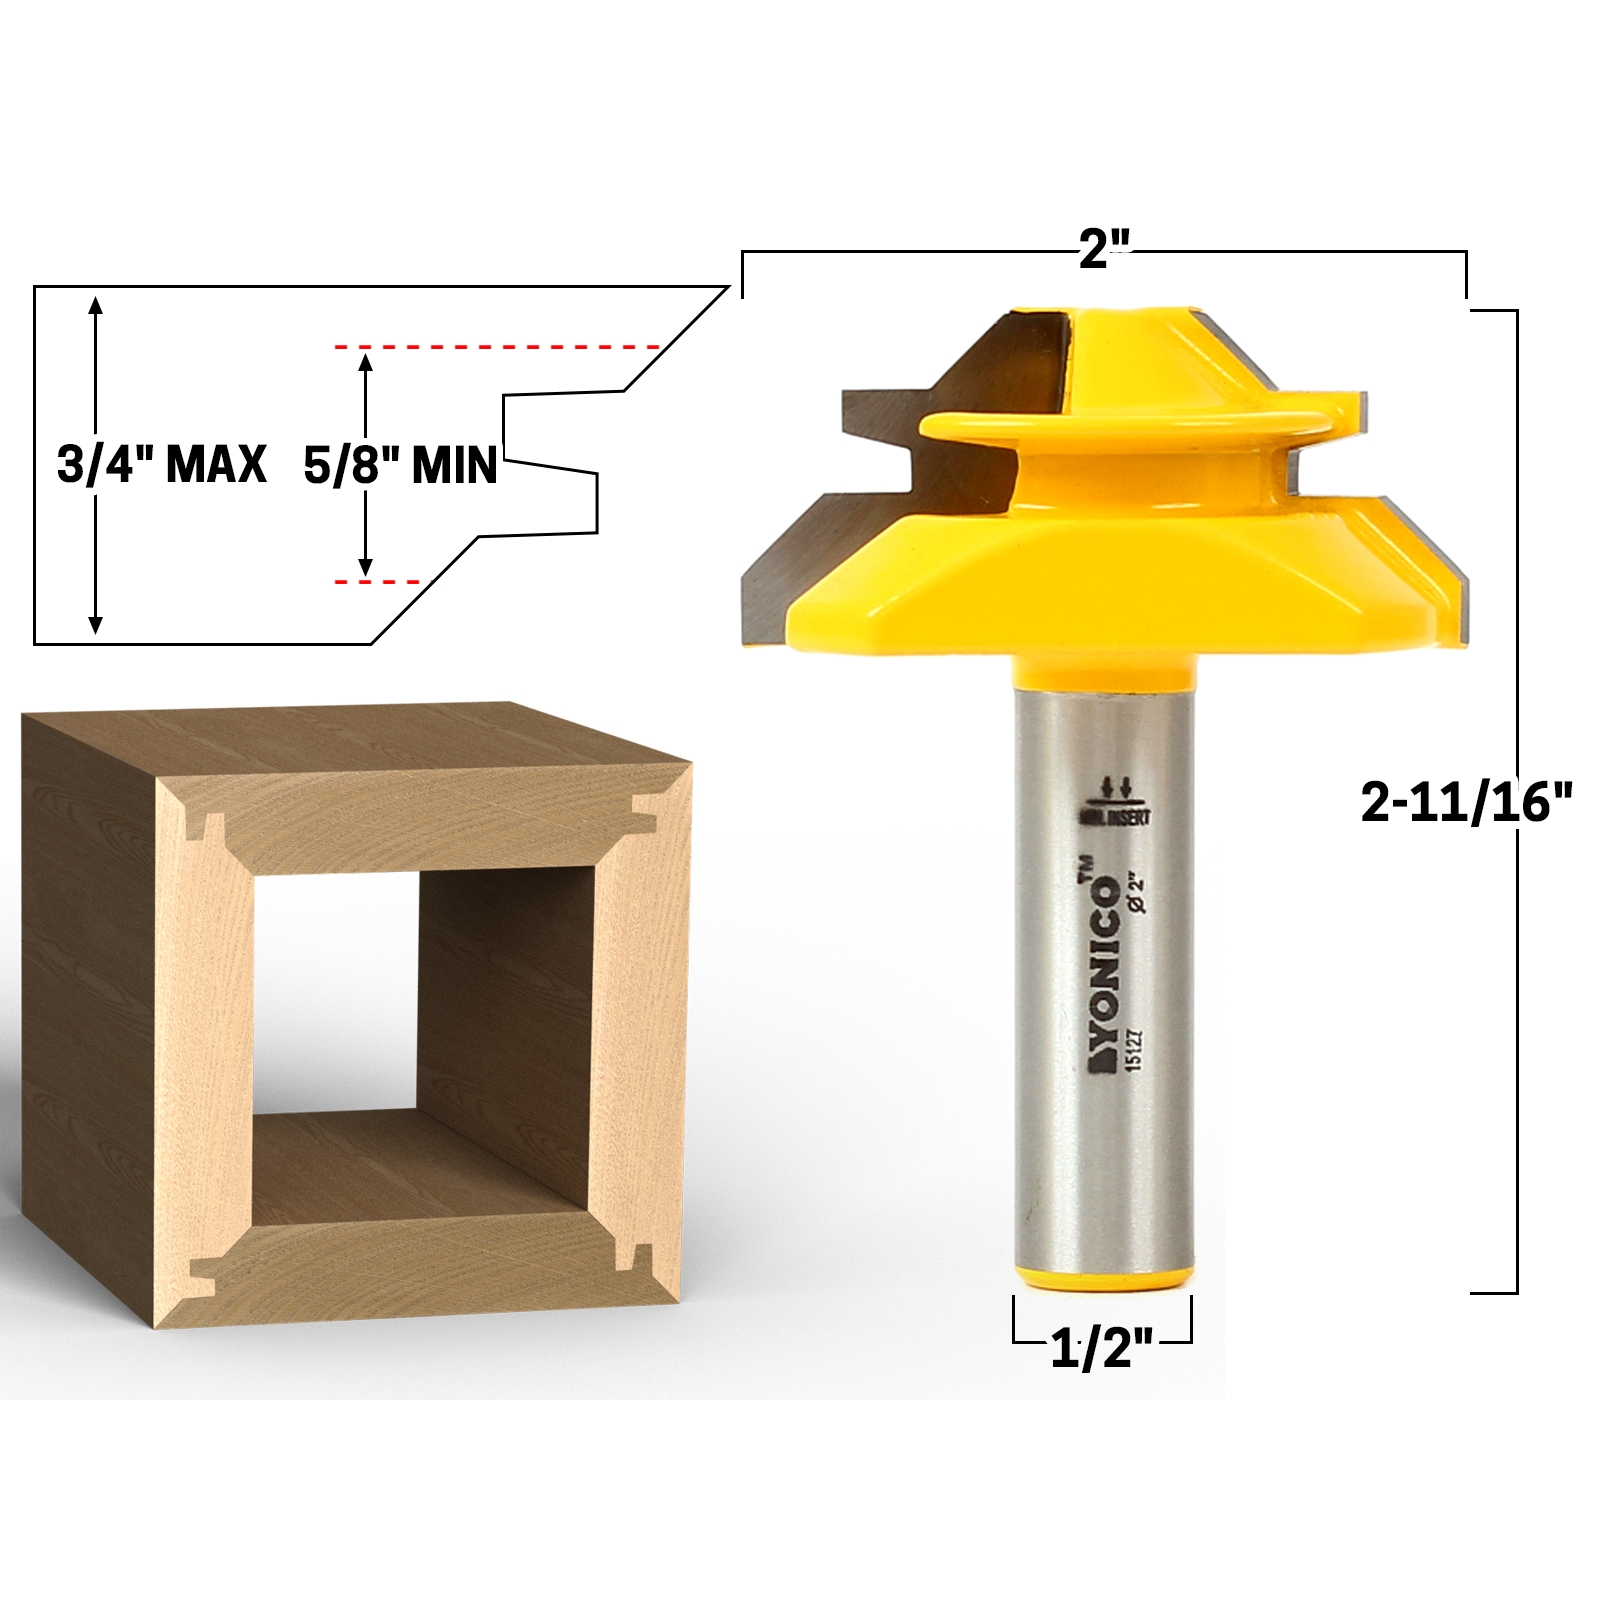 45 Degree Up To 3 4 Stock Lock Miter Router Bit 1 2 Shank